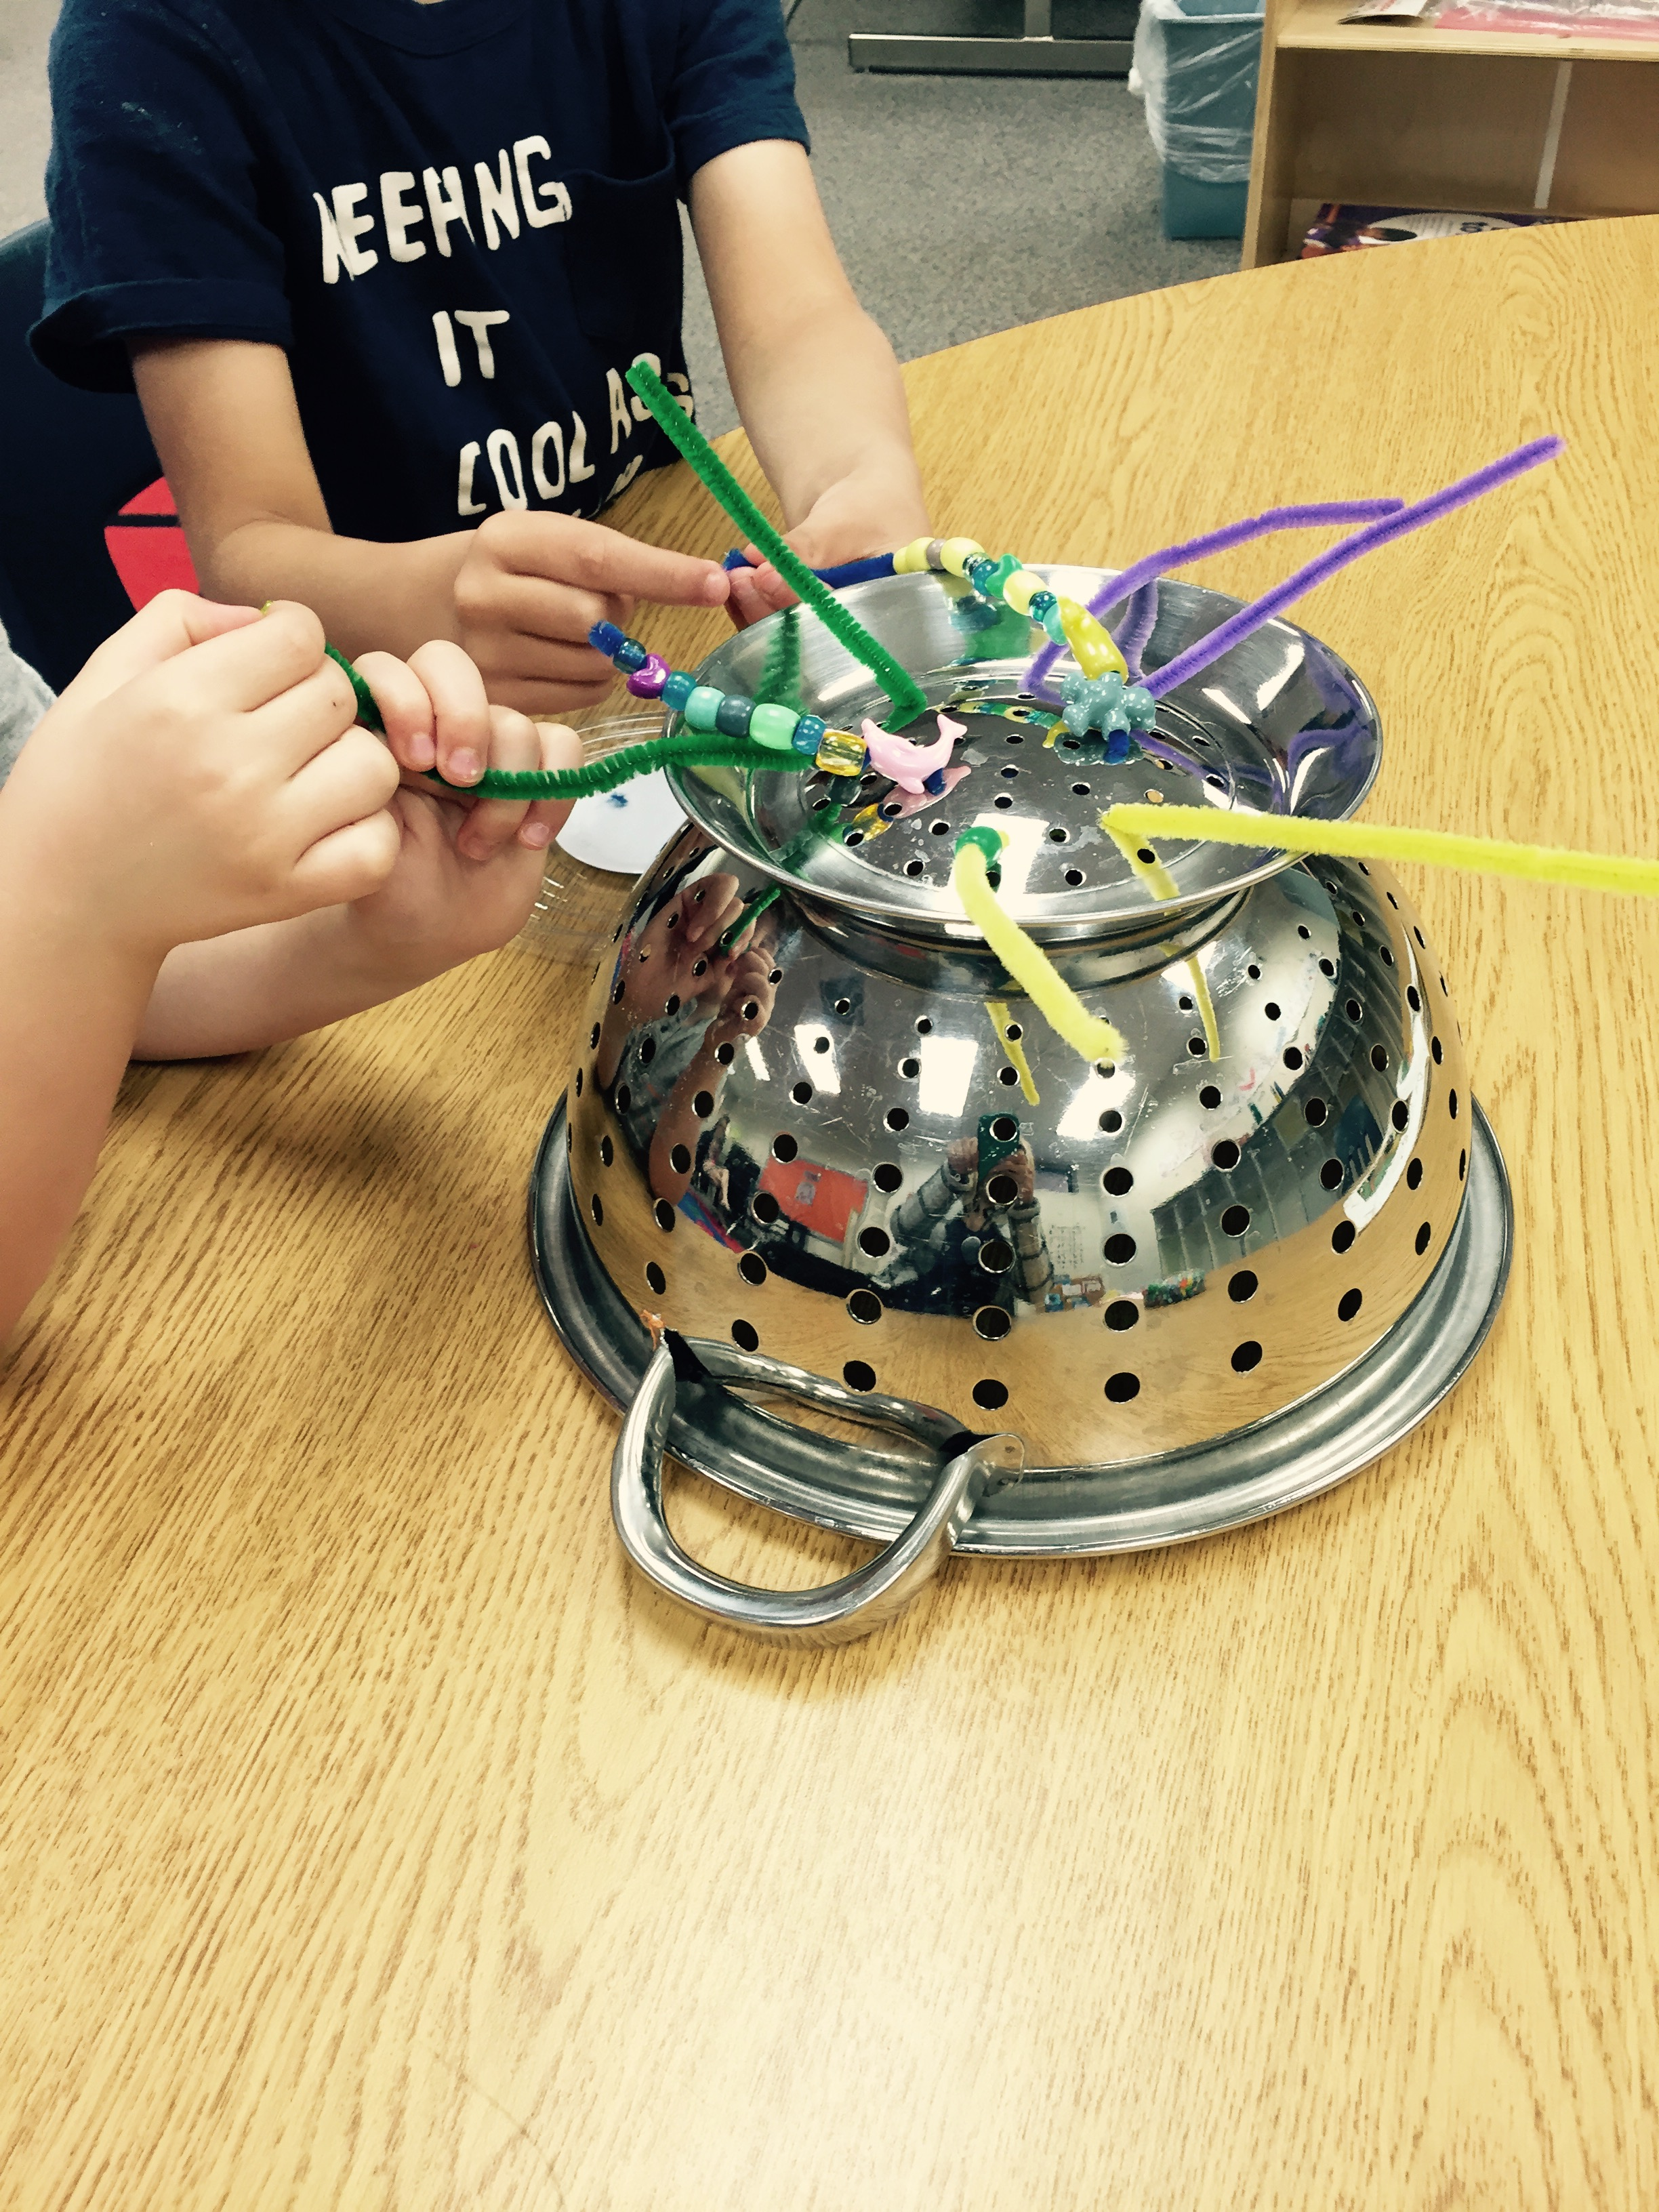 Pulling pipe cleaner strings from colander